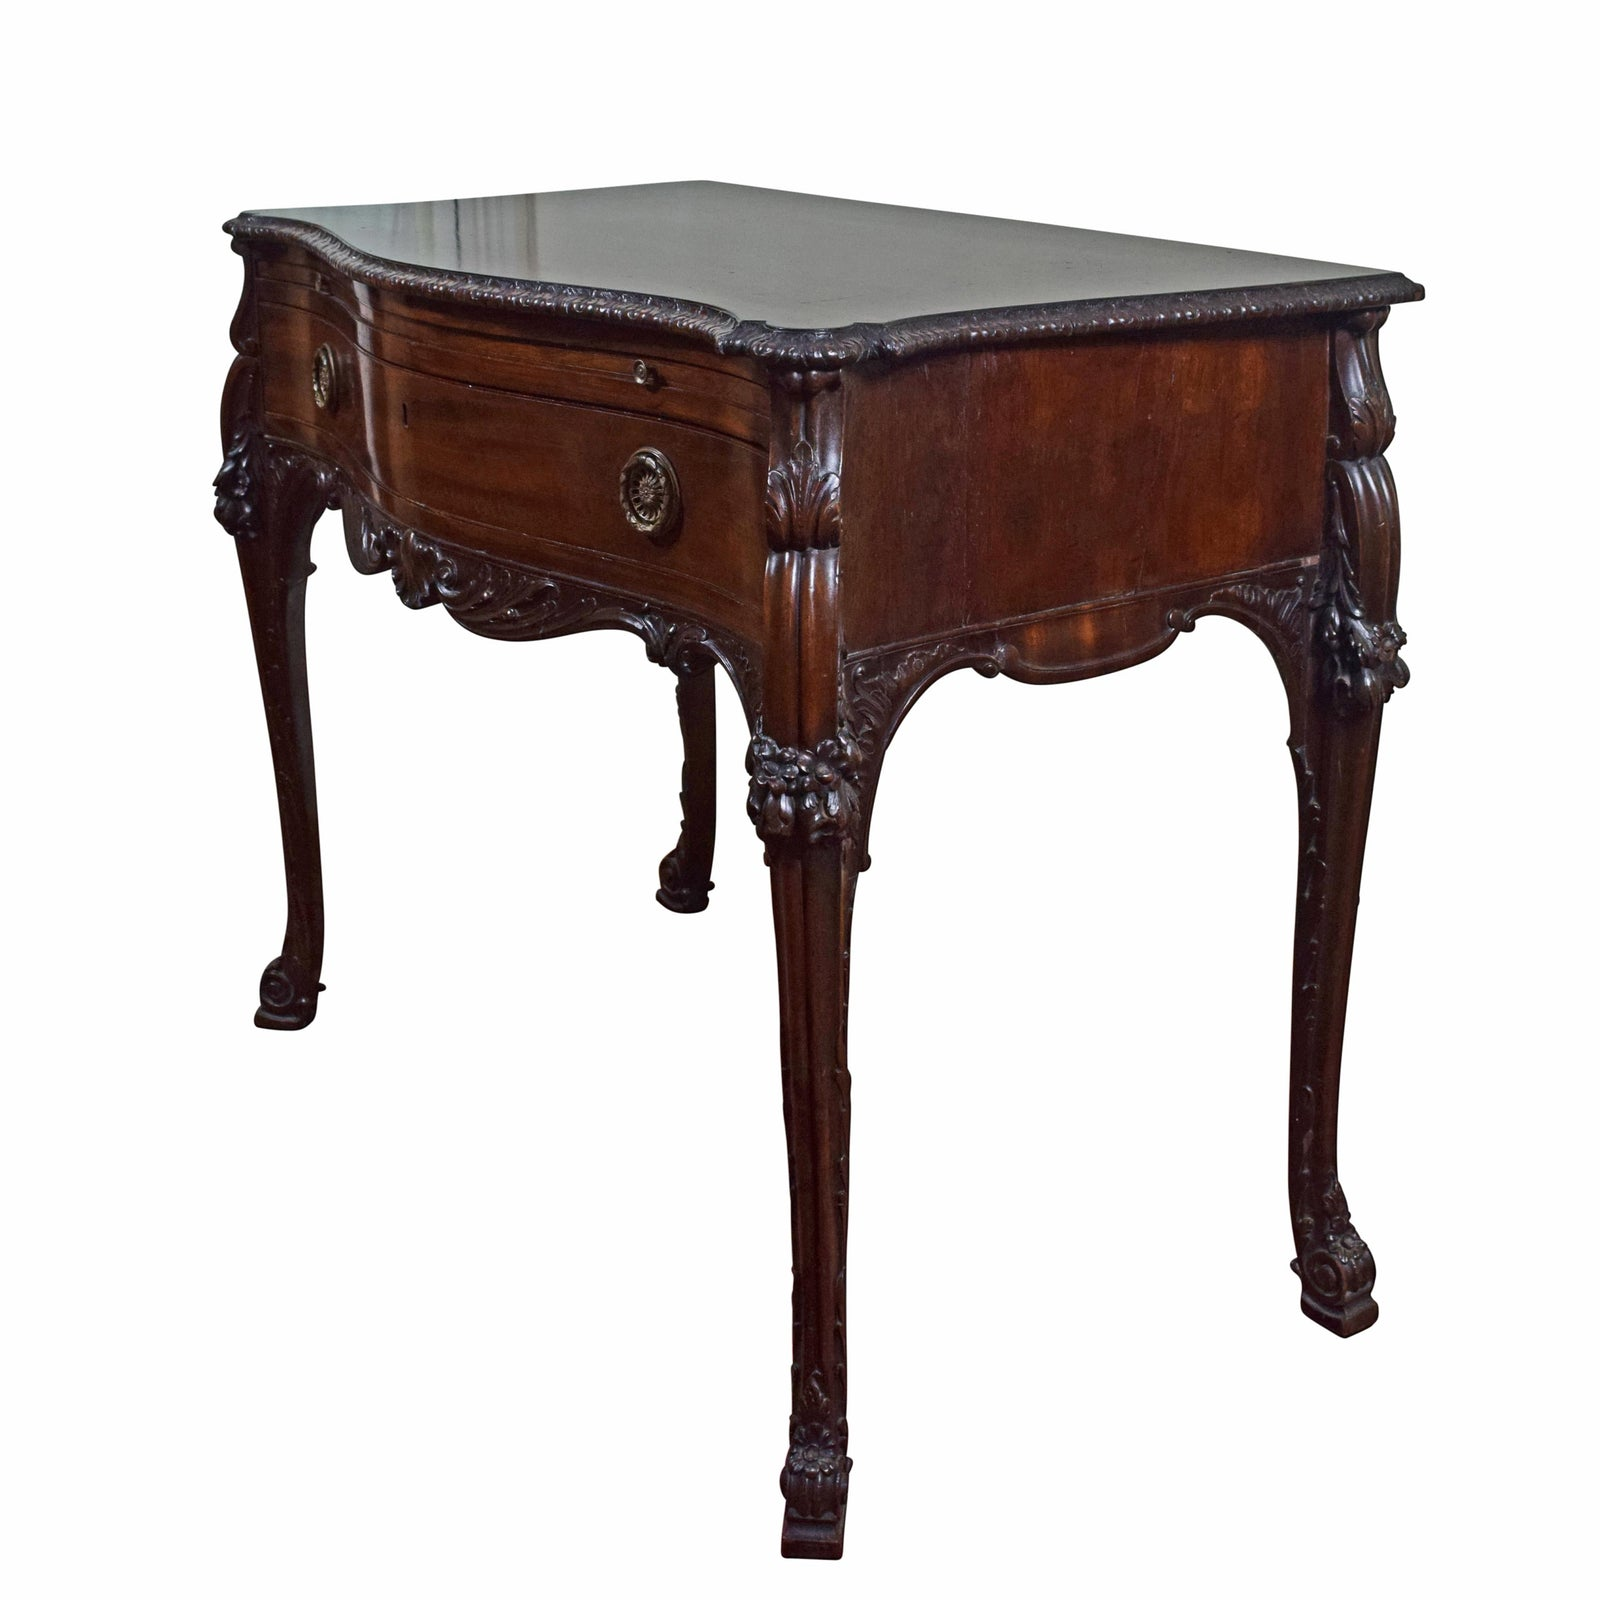 A George III Serpentine Mahogany Side Table